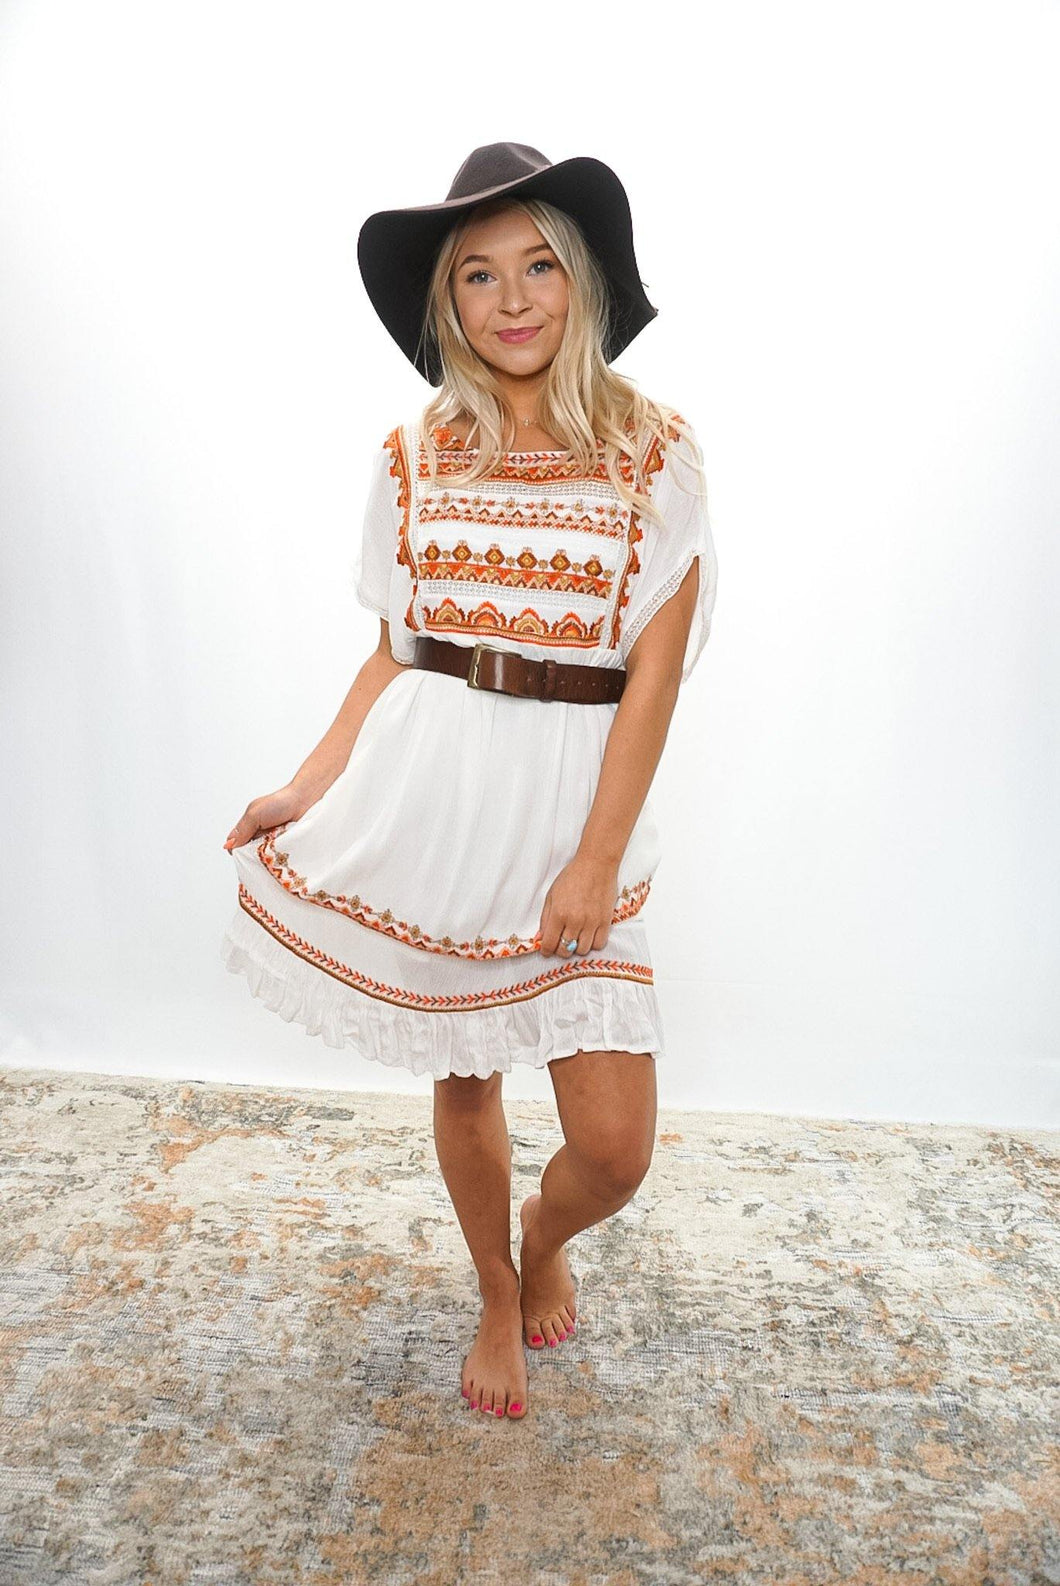 Free People Terra Cotta Dress - Sublime Clothing Boutique